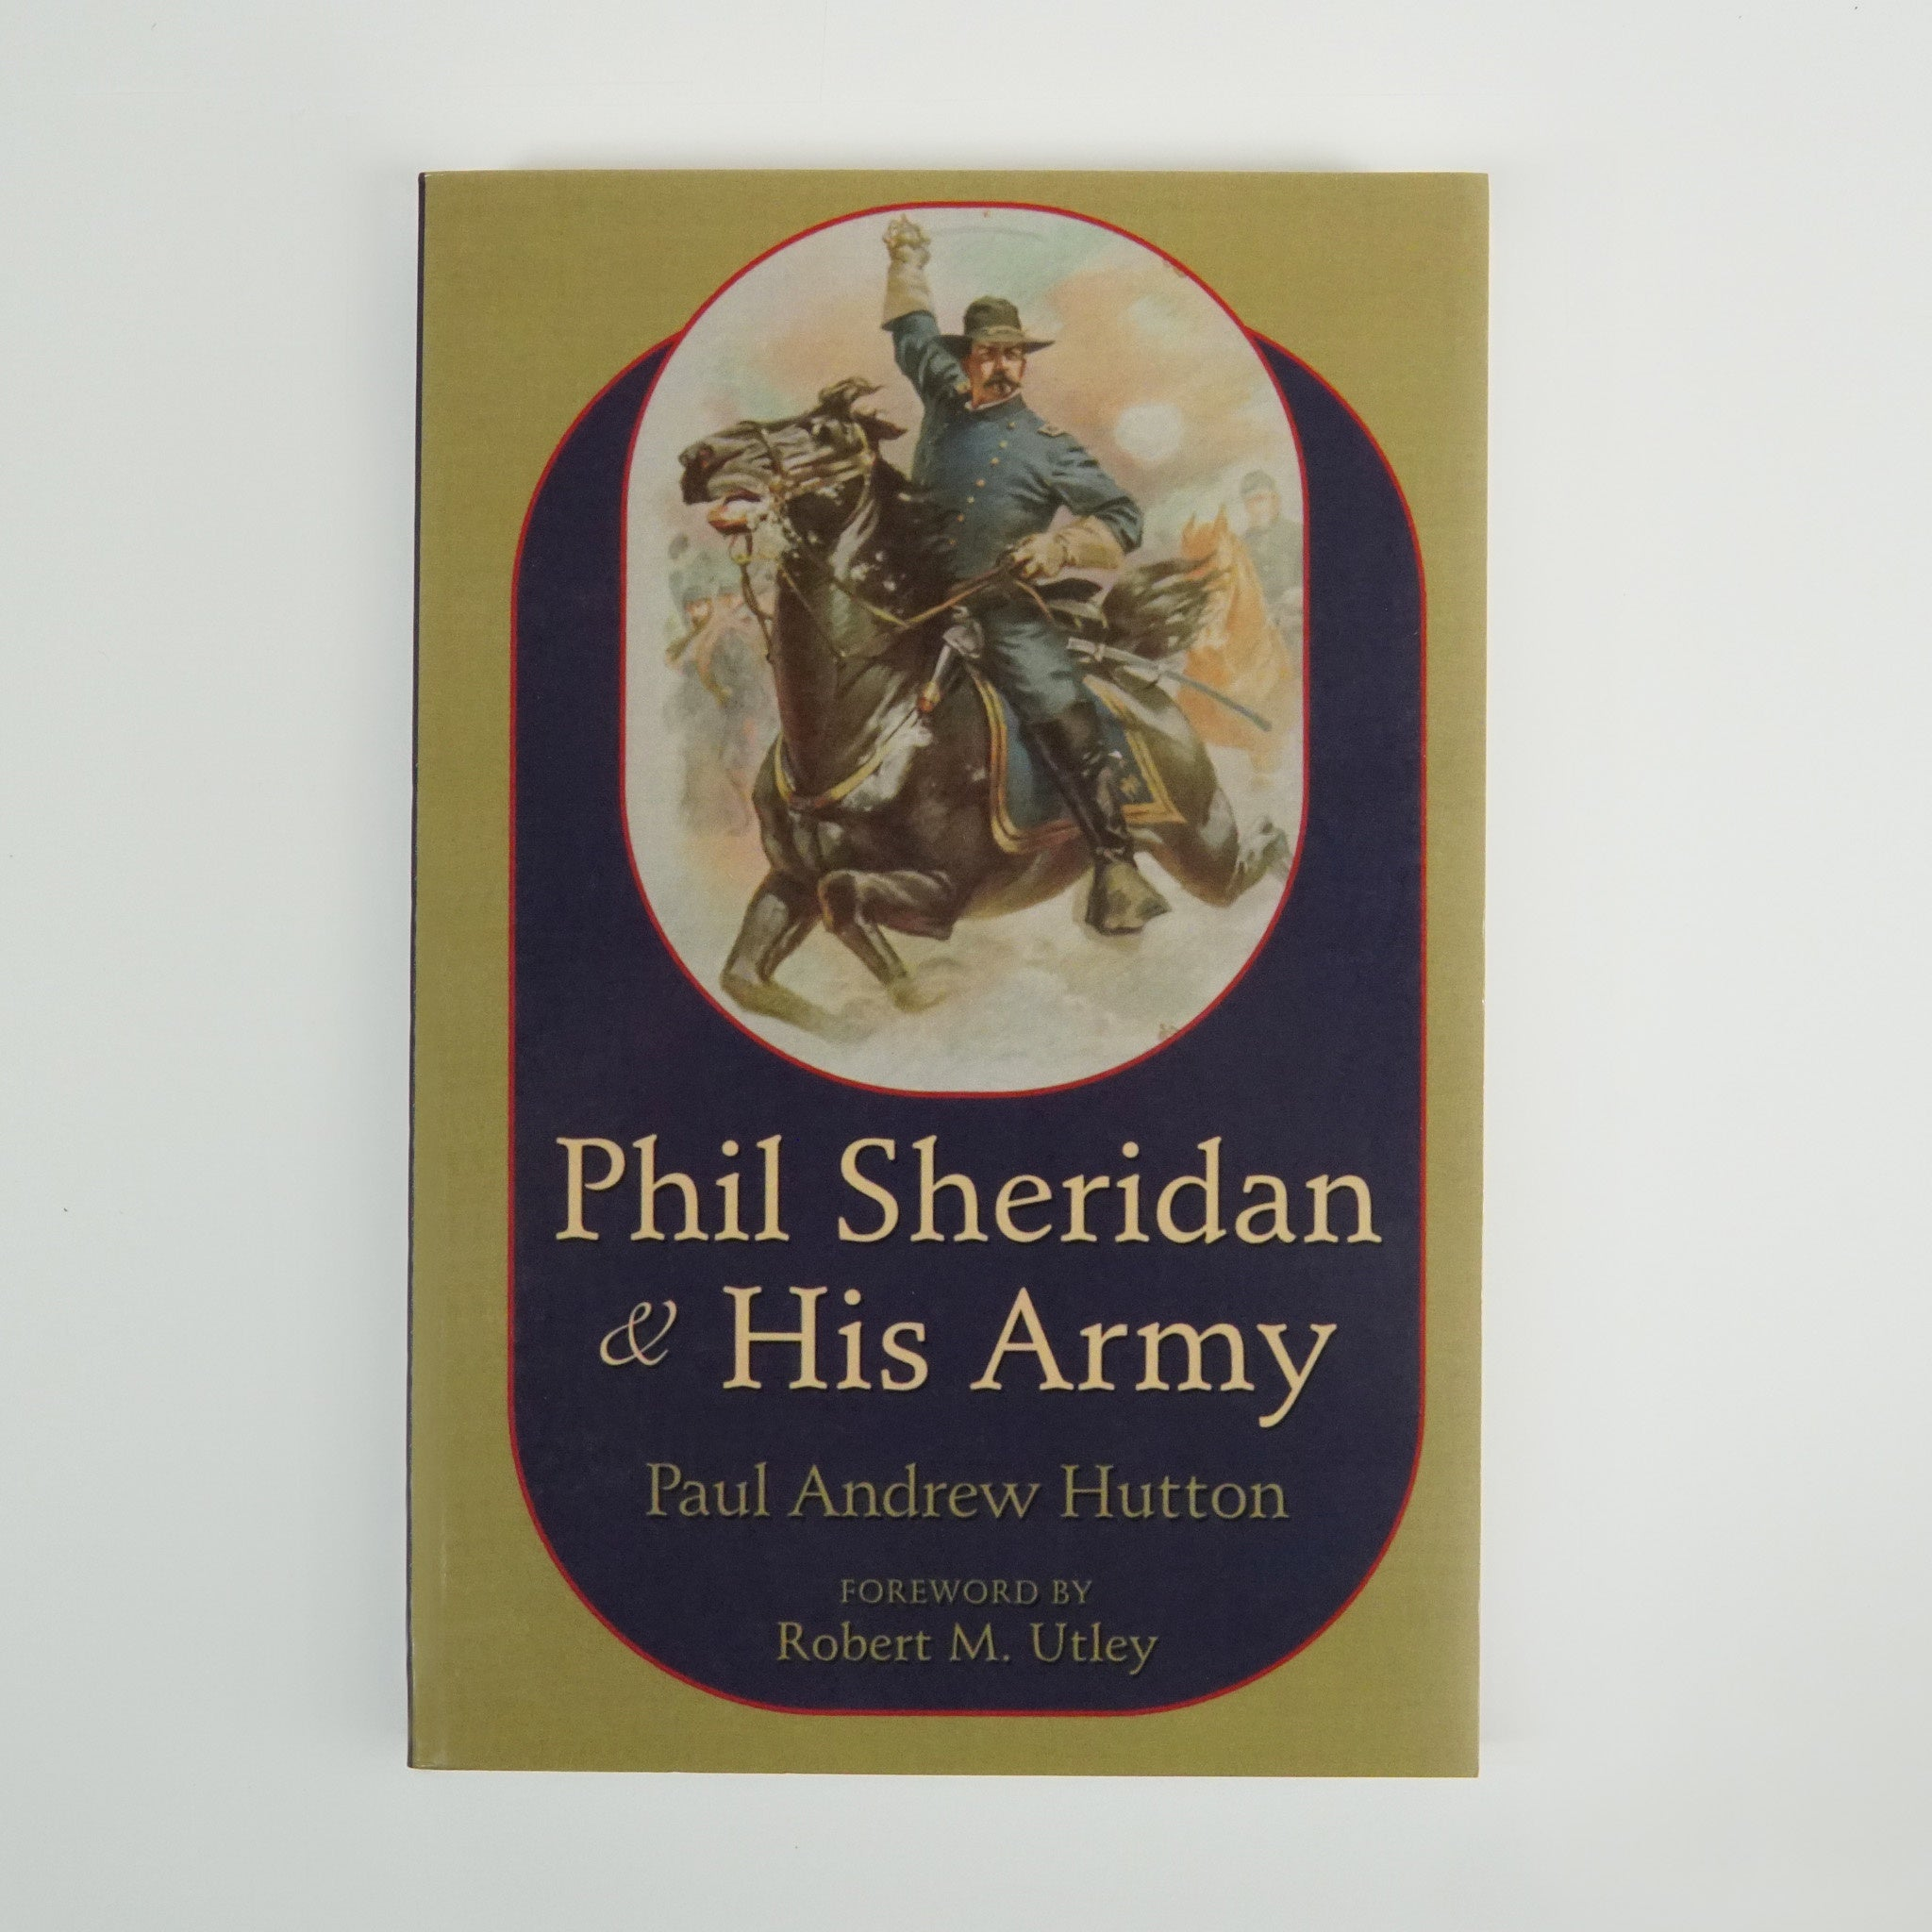 BK 8 PHIL SHERIDAN & HIS ARMY BY PAUL ANDREW HUTTON #21022404